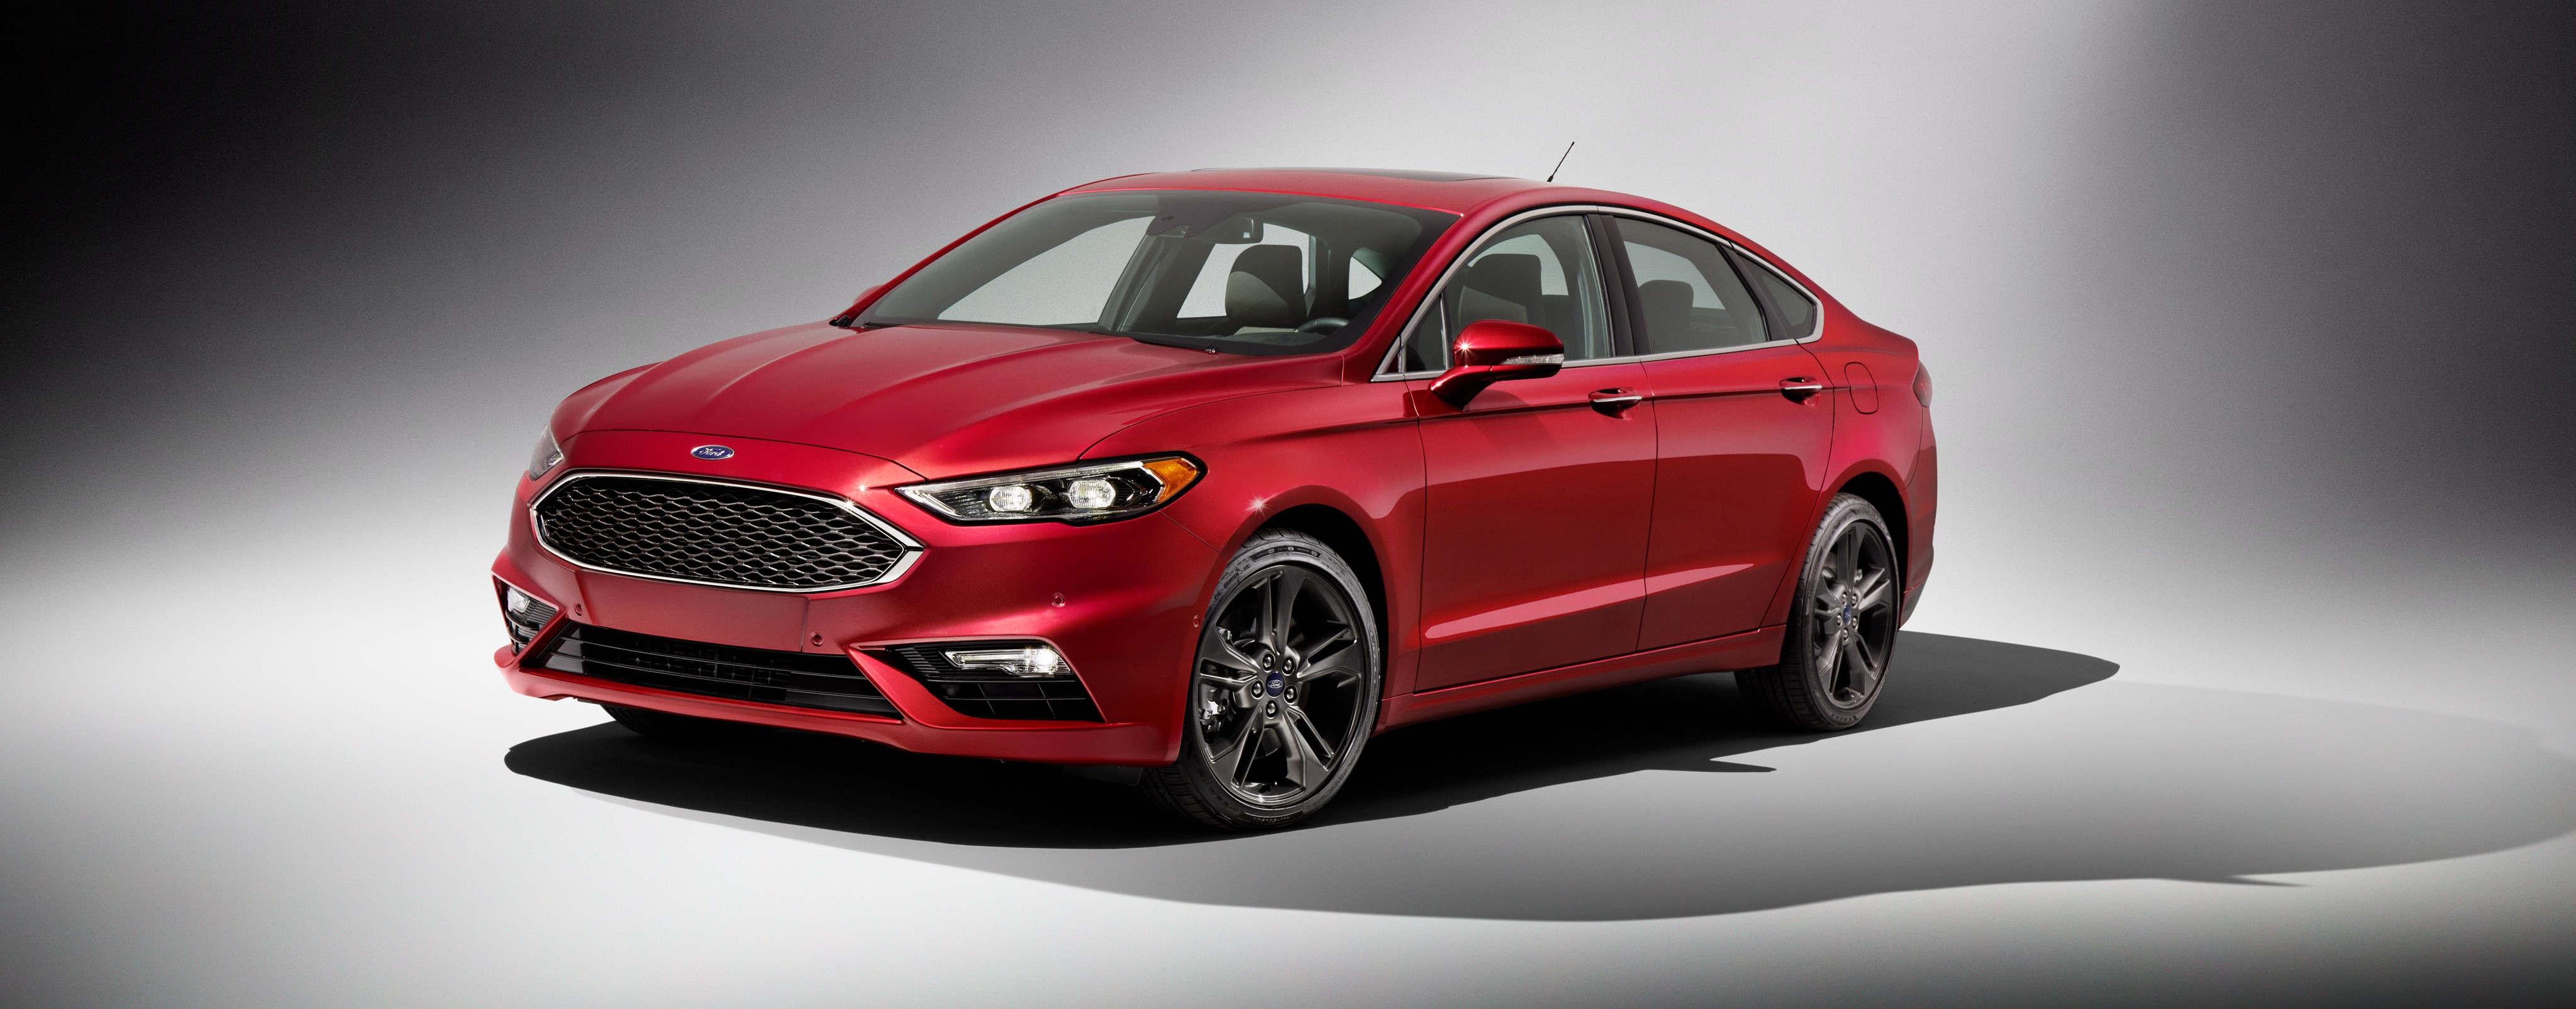 2020 Ford Fusion Redesign Cancelled, Declining Sales Are ...